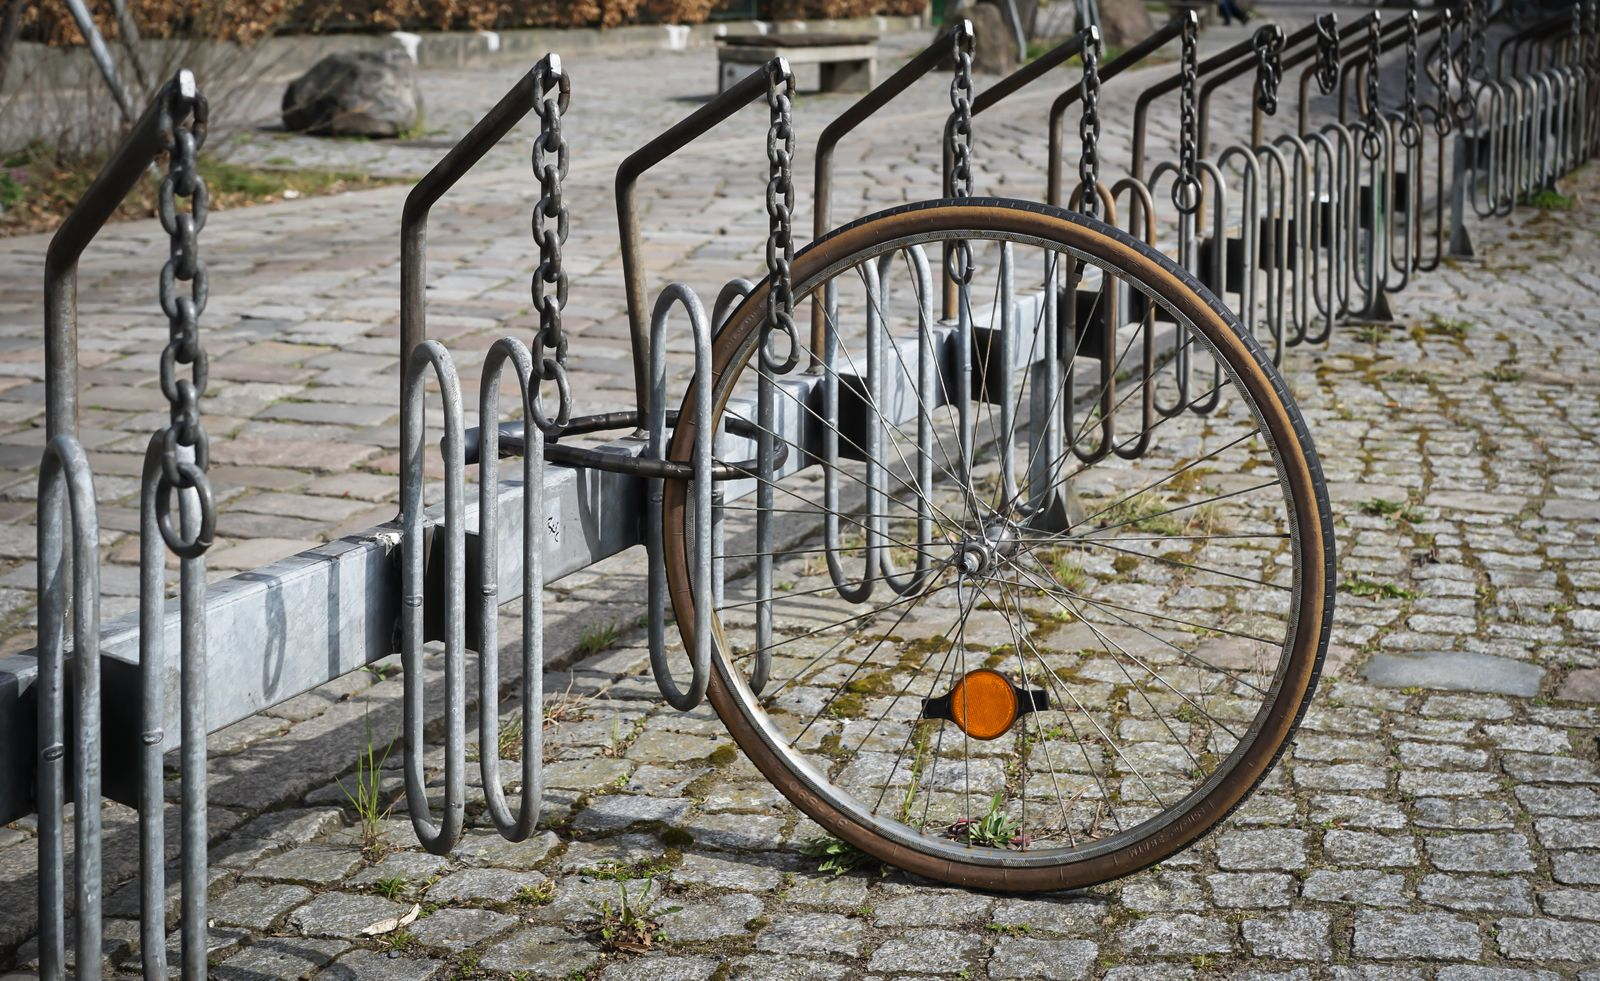 Remains Of Stolen Bicycle On Rack